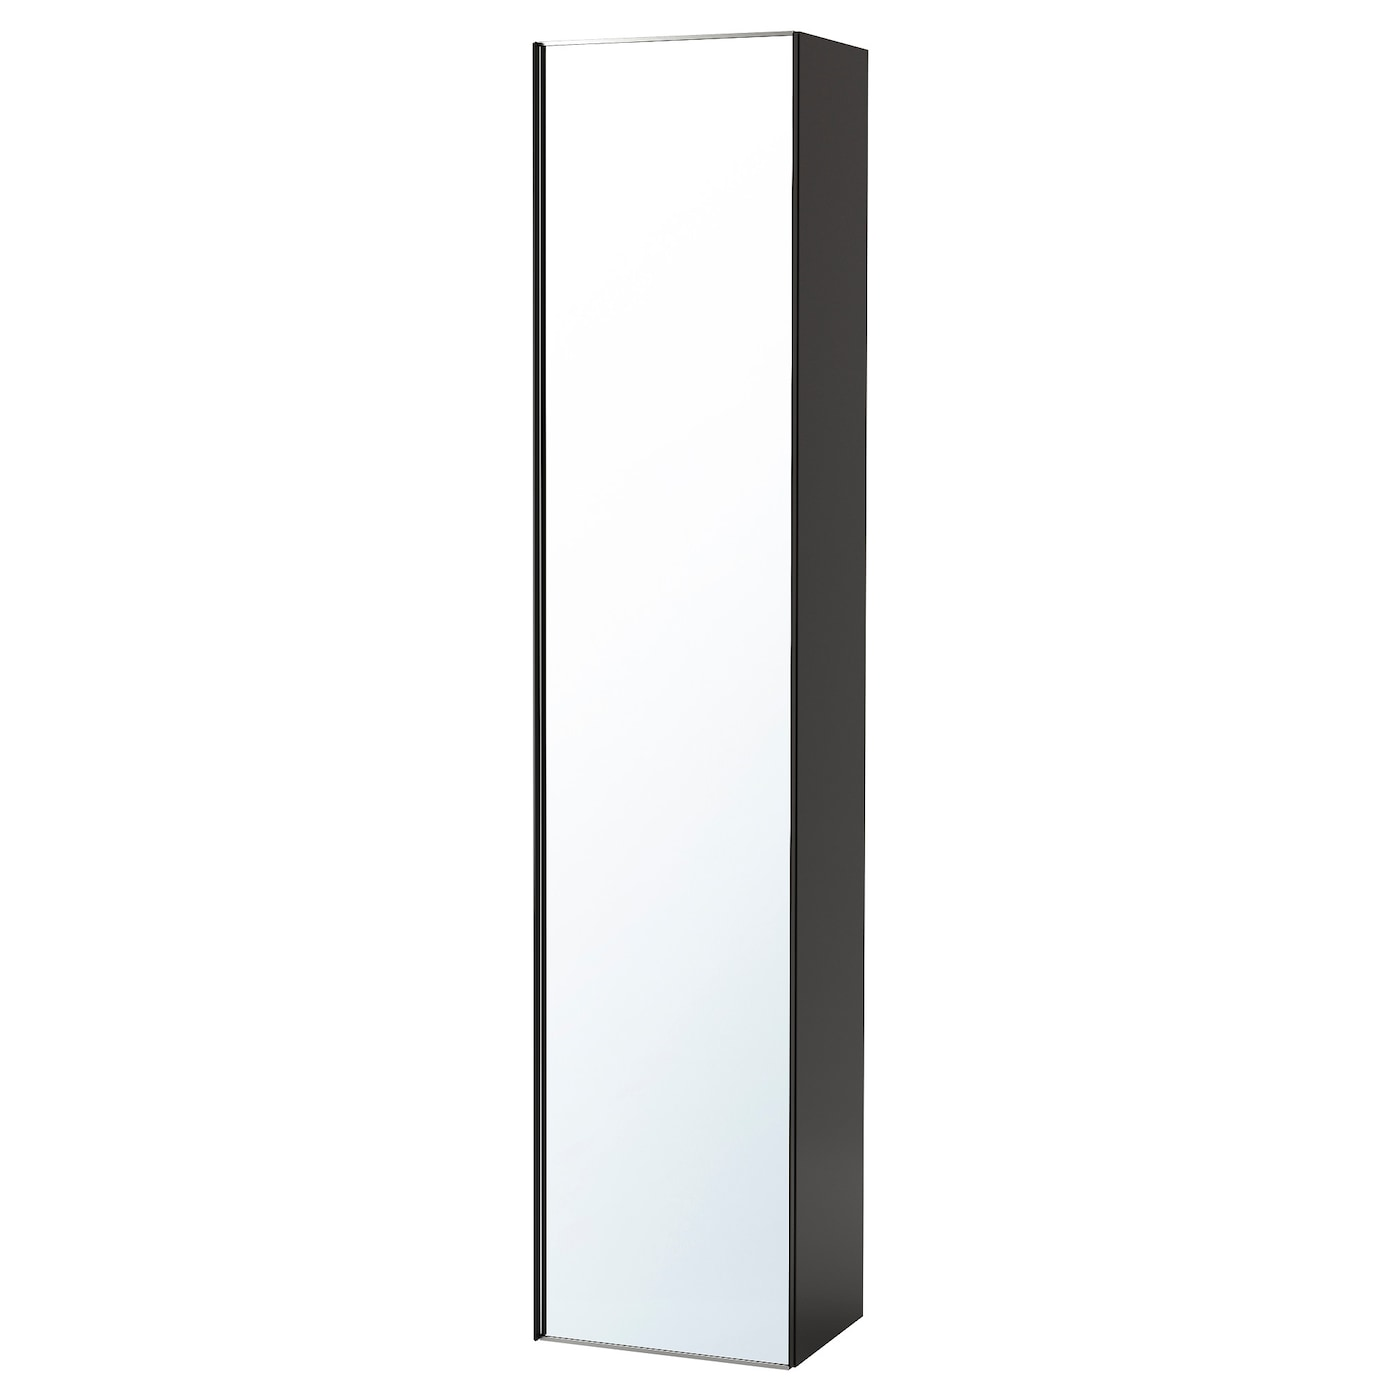 godmorgon high cabinet with mirror door high gloss grey 40x32x192 cm ikea. Black Bedroom Furniture Sets. Home Design Ideas